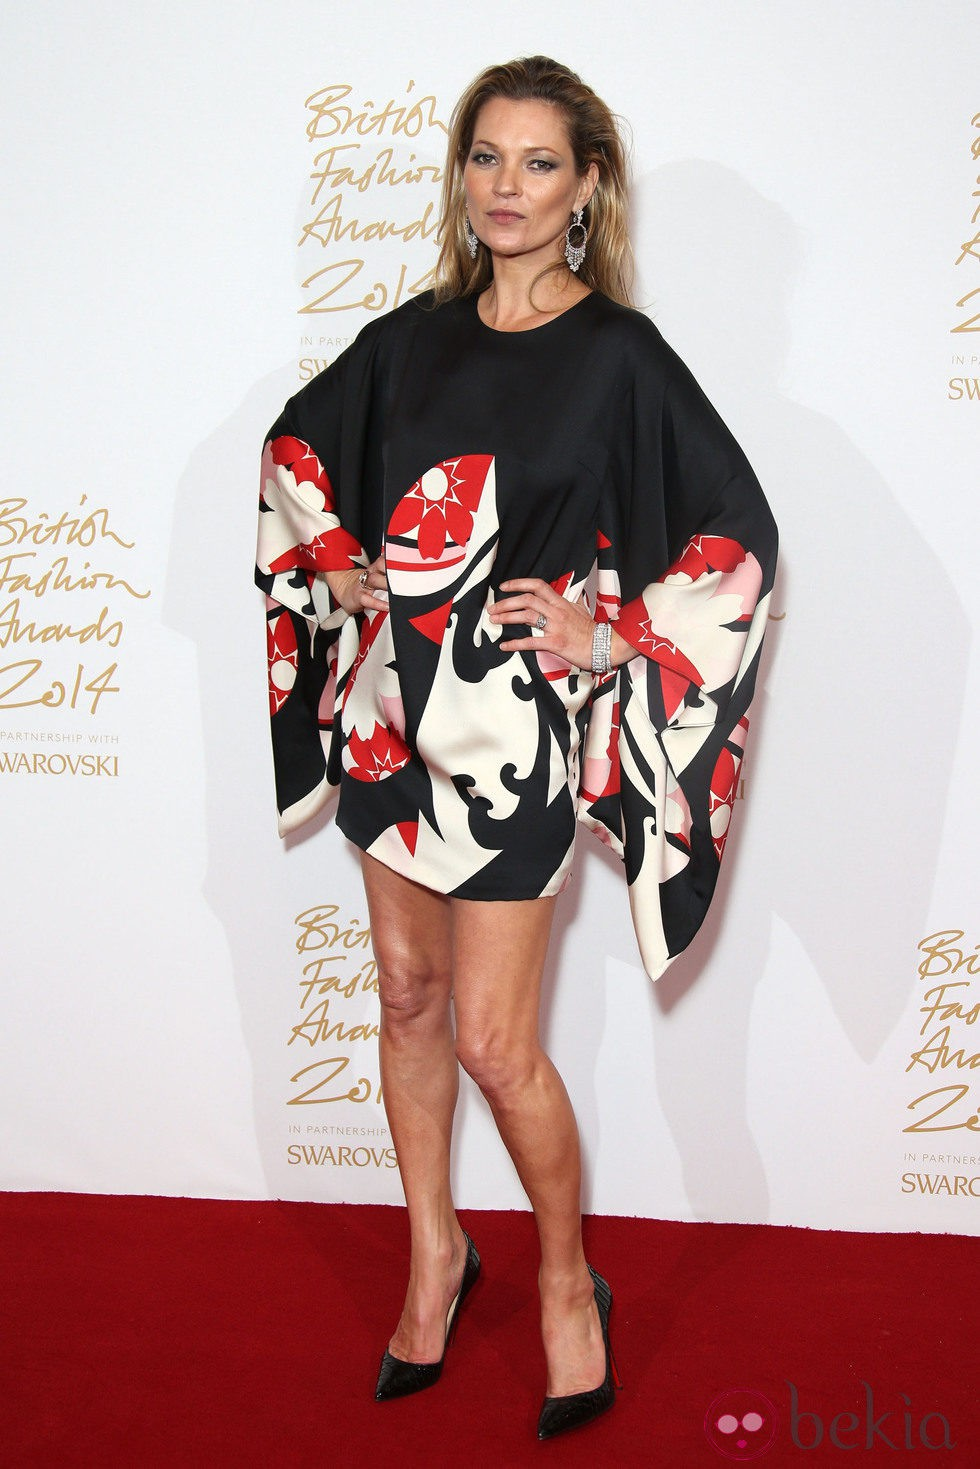 Kate moss acude a los 39 british fashion awards 2014 39 en for British mode